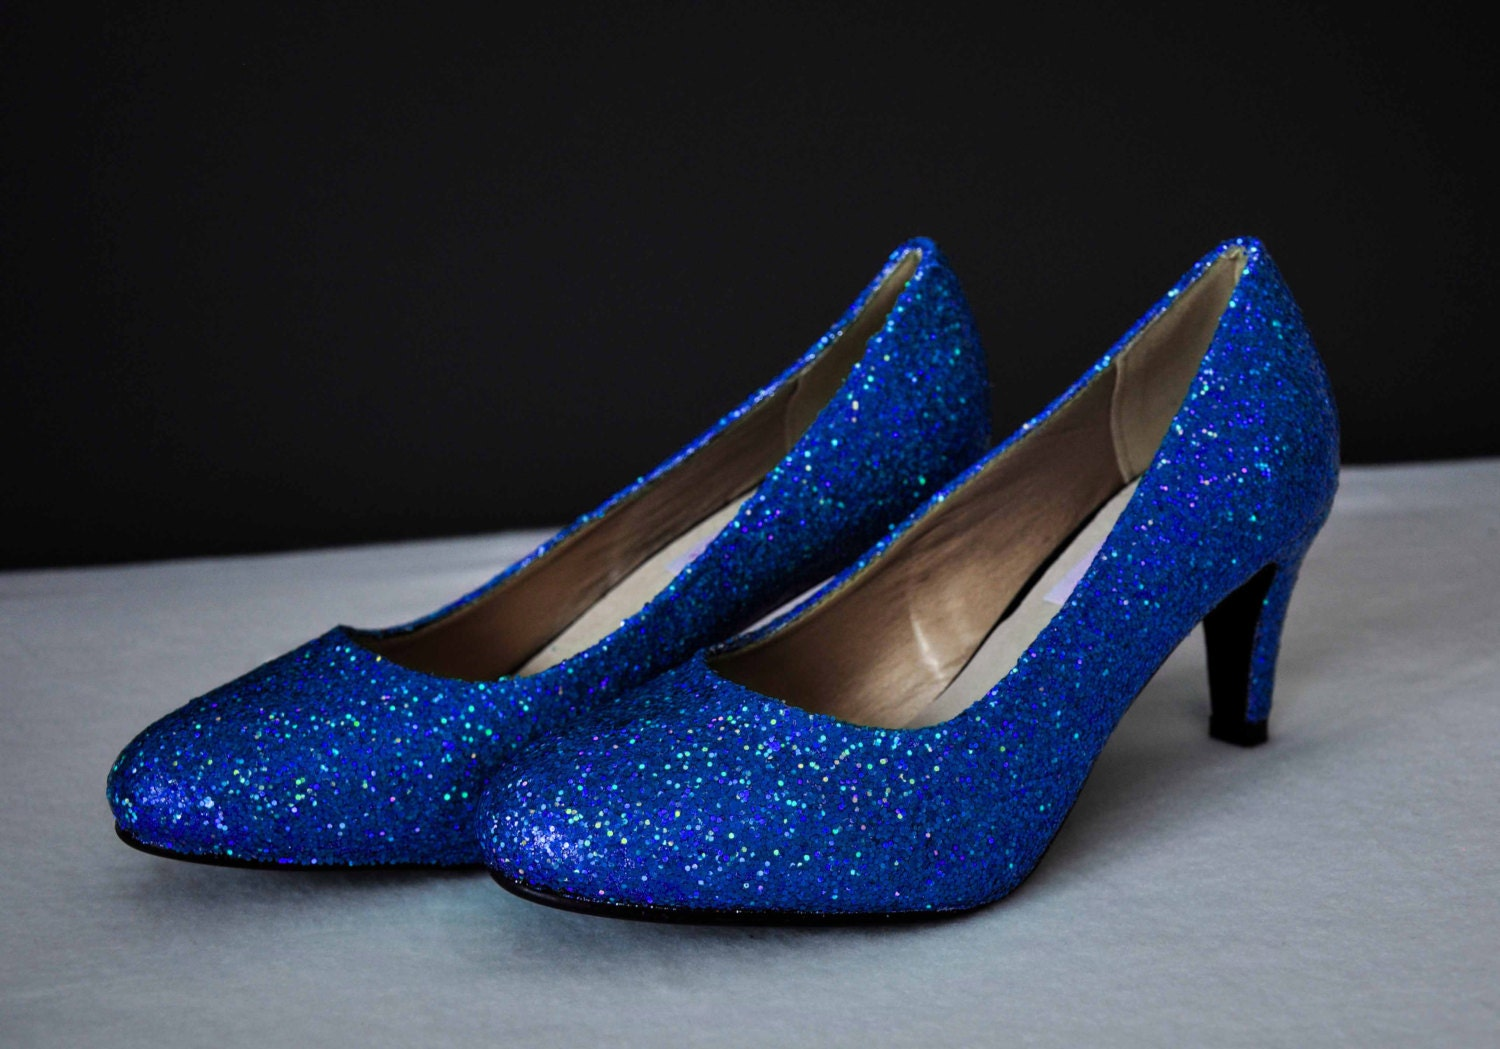 Royal Blue Sparkly Heels - Is Heel